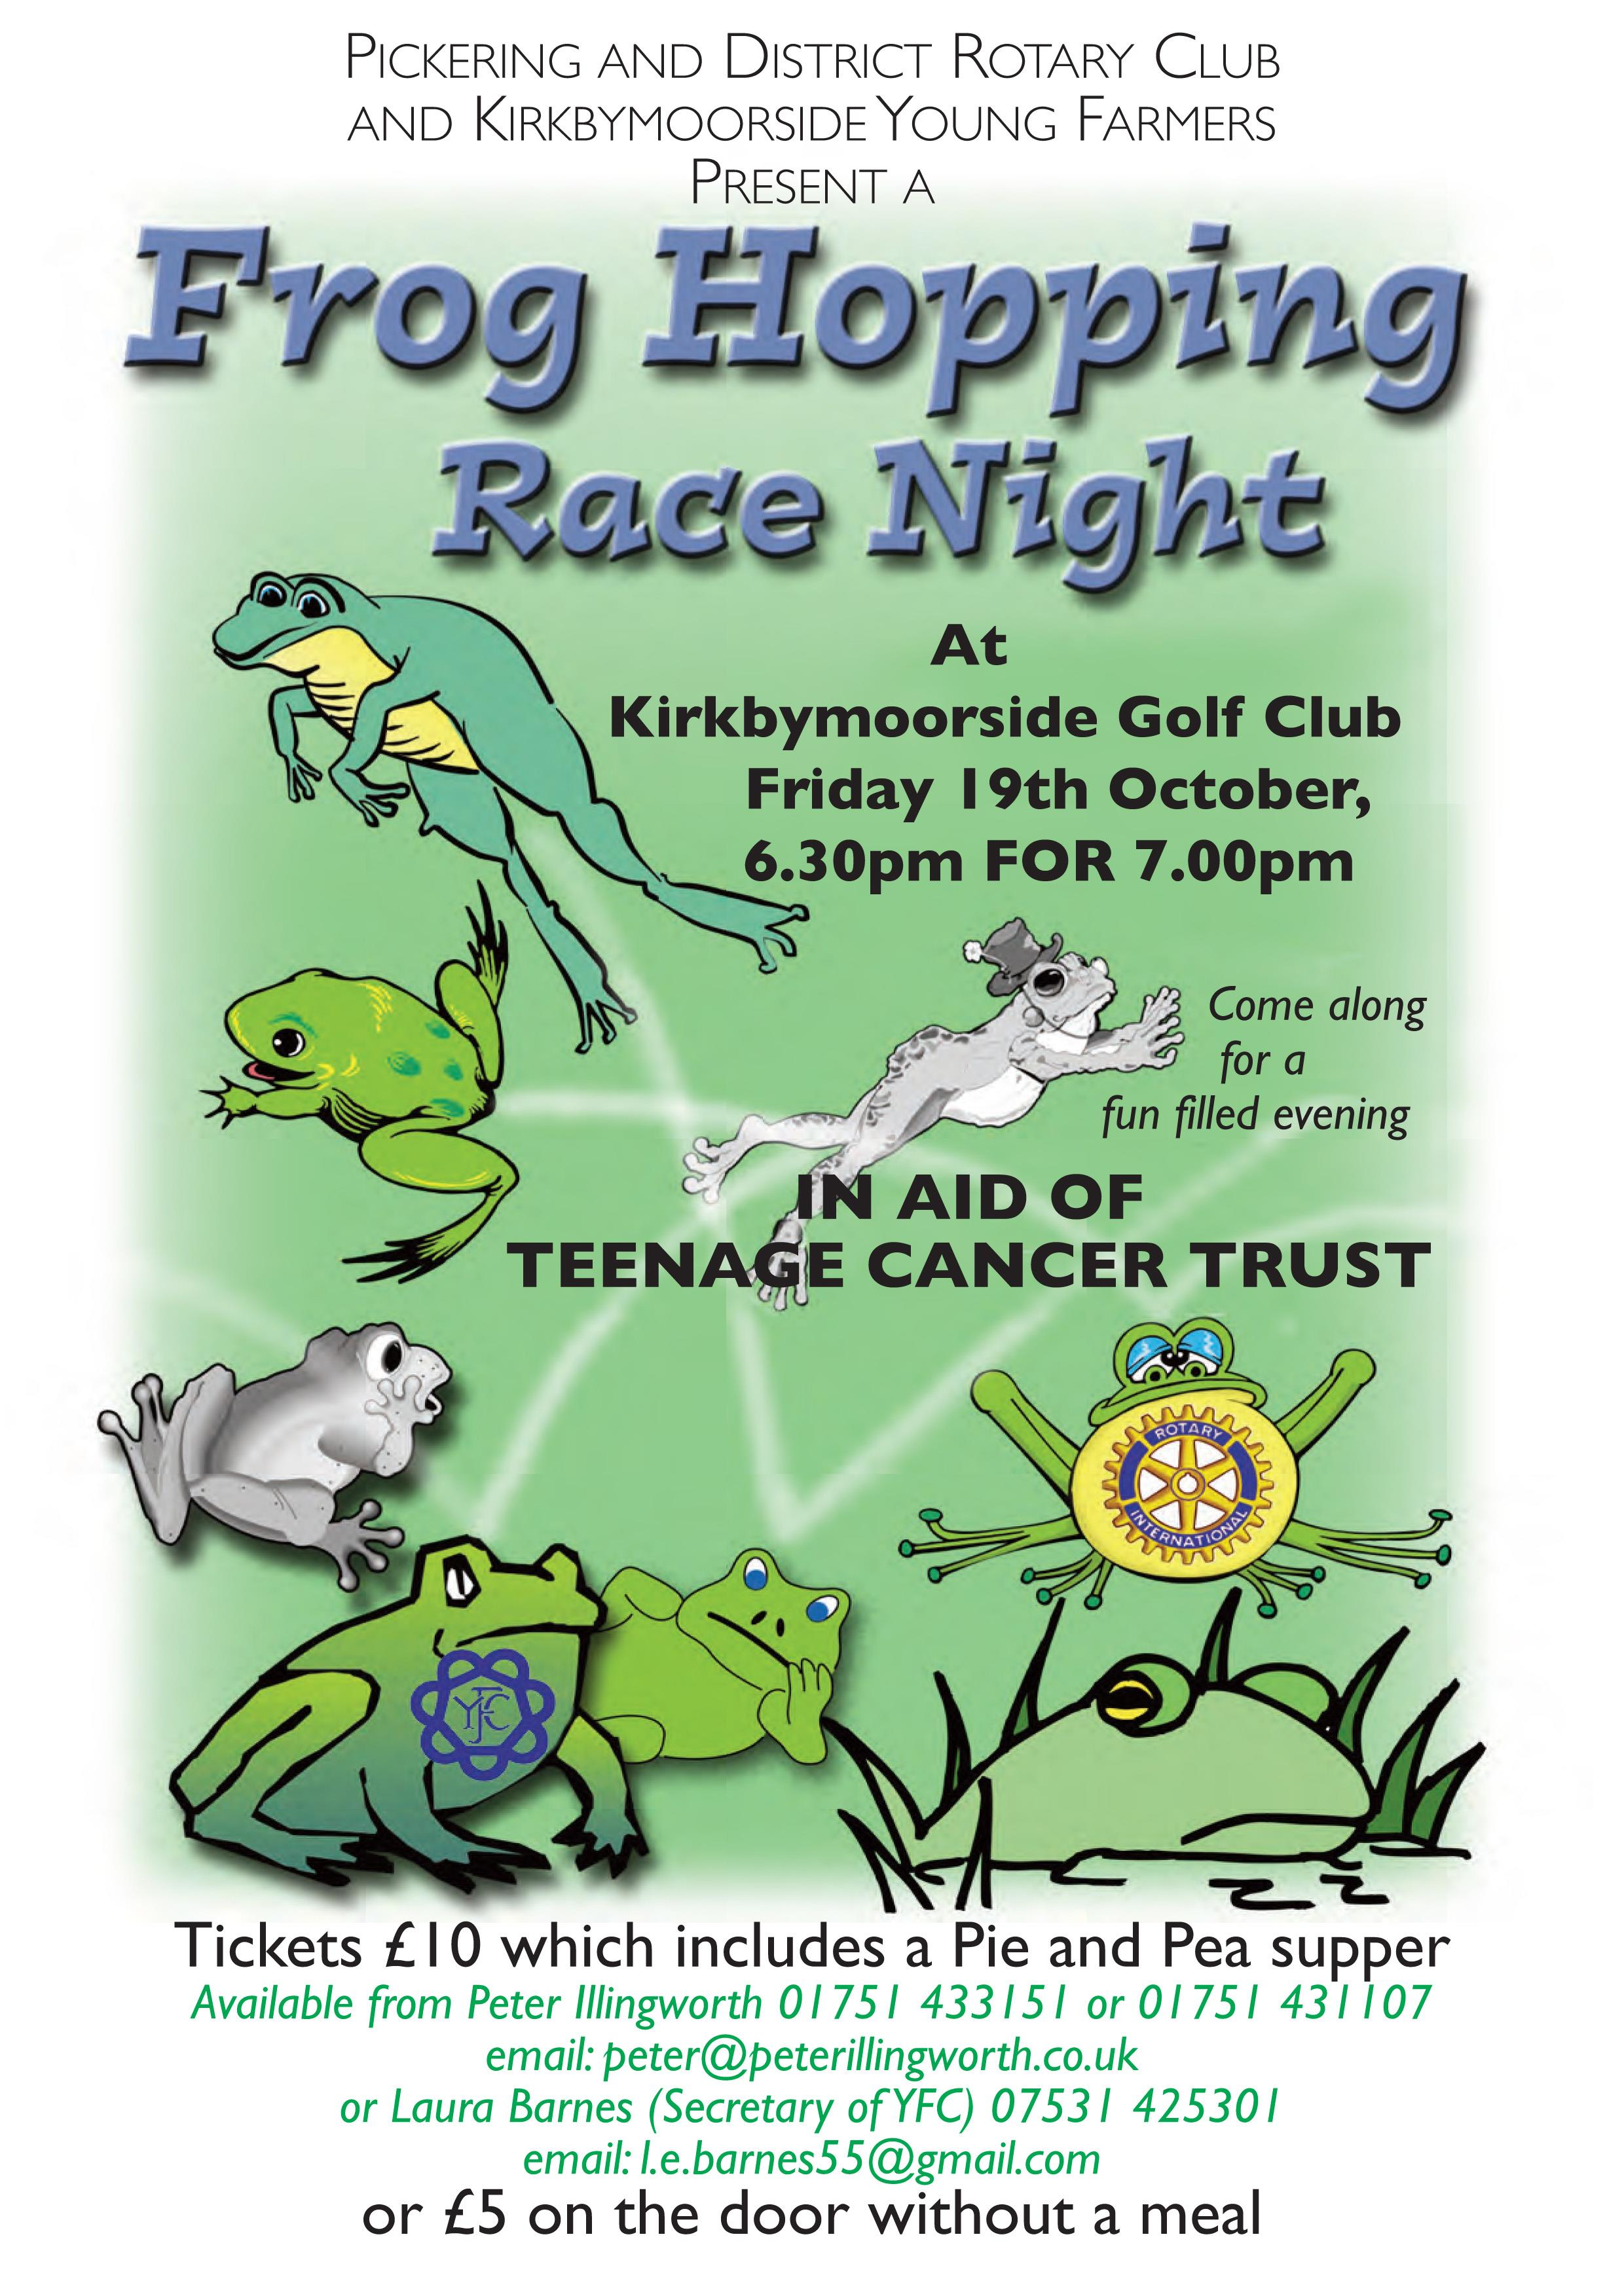 Kirkbymoorside Young Farmers and Pickering Rotary Club - Frog Hopping Race Night